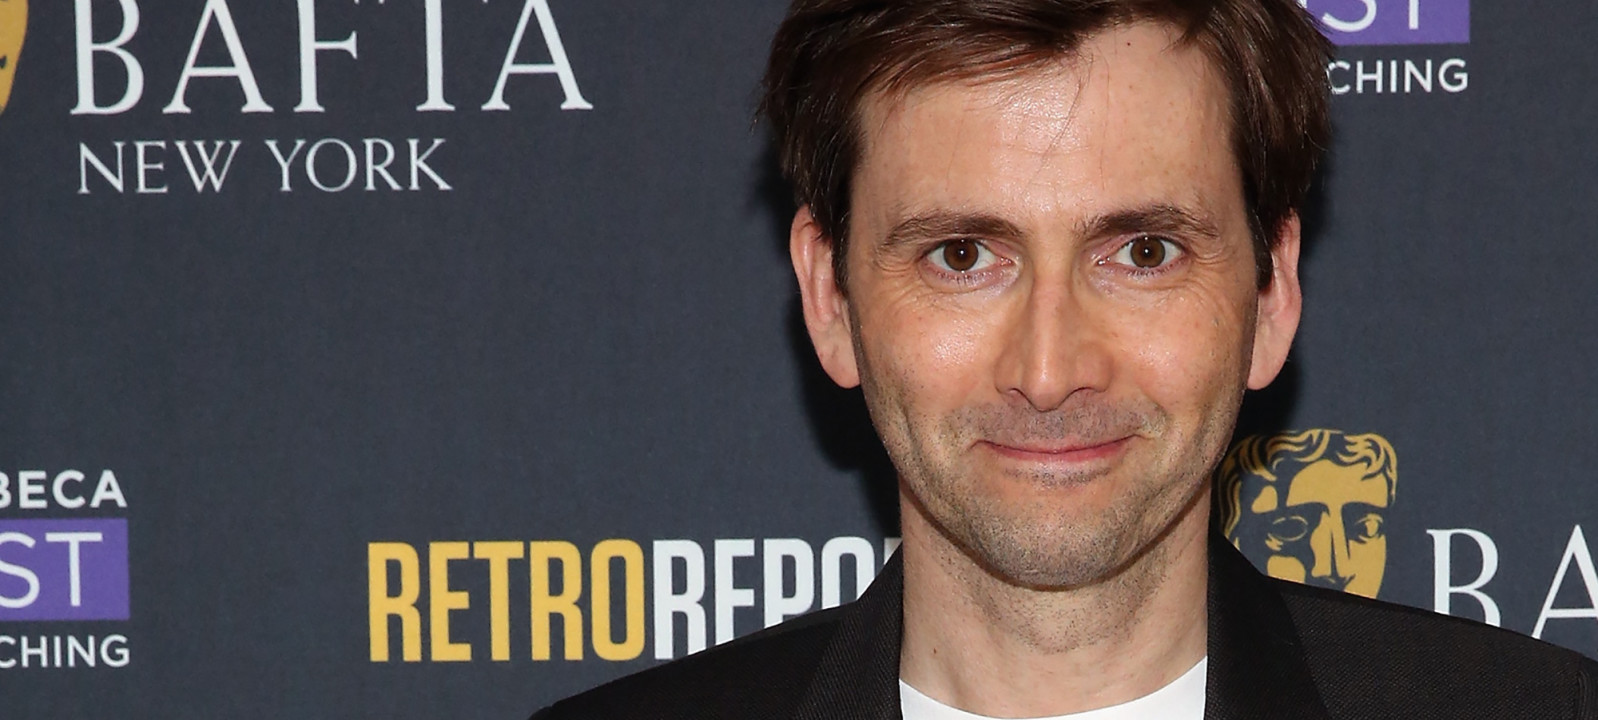 "BAFTA New York With Tribeca Shortlist Hosts ""In Conversation With David Tennant"""